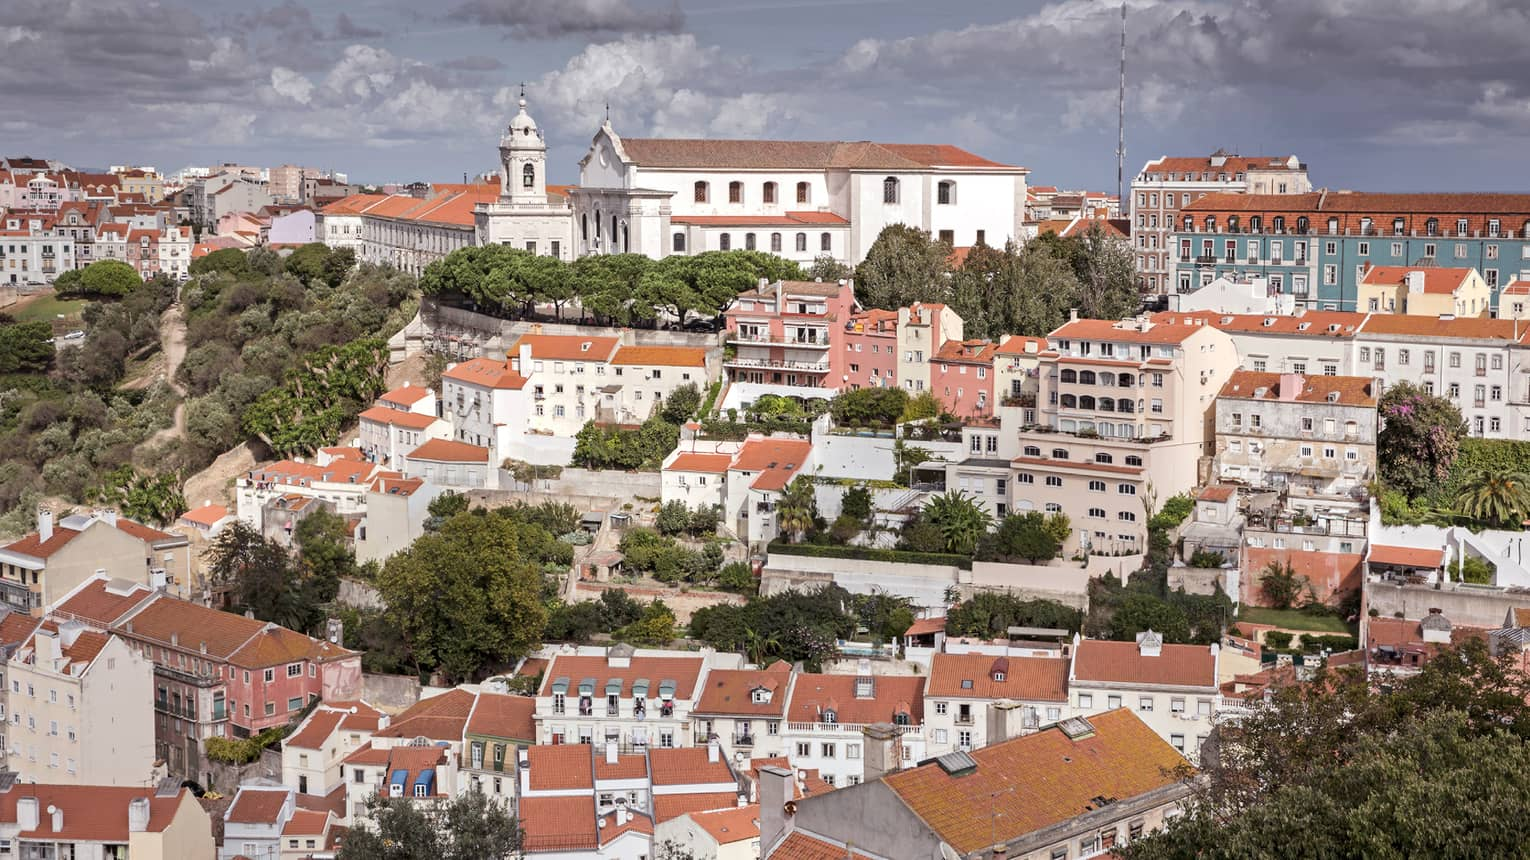 Aerial view of Lisbon city with white cathedral, buildings with red rooftops